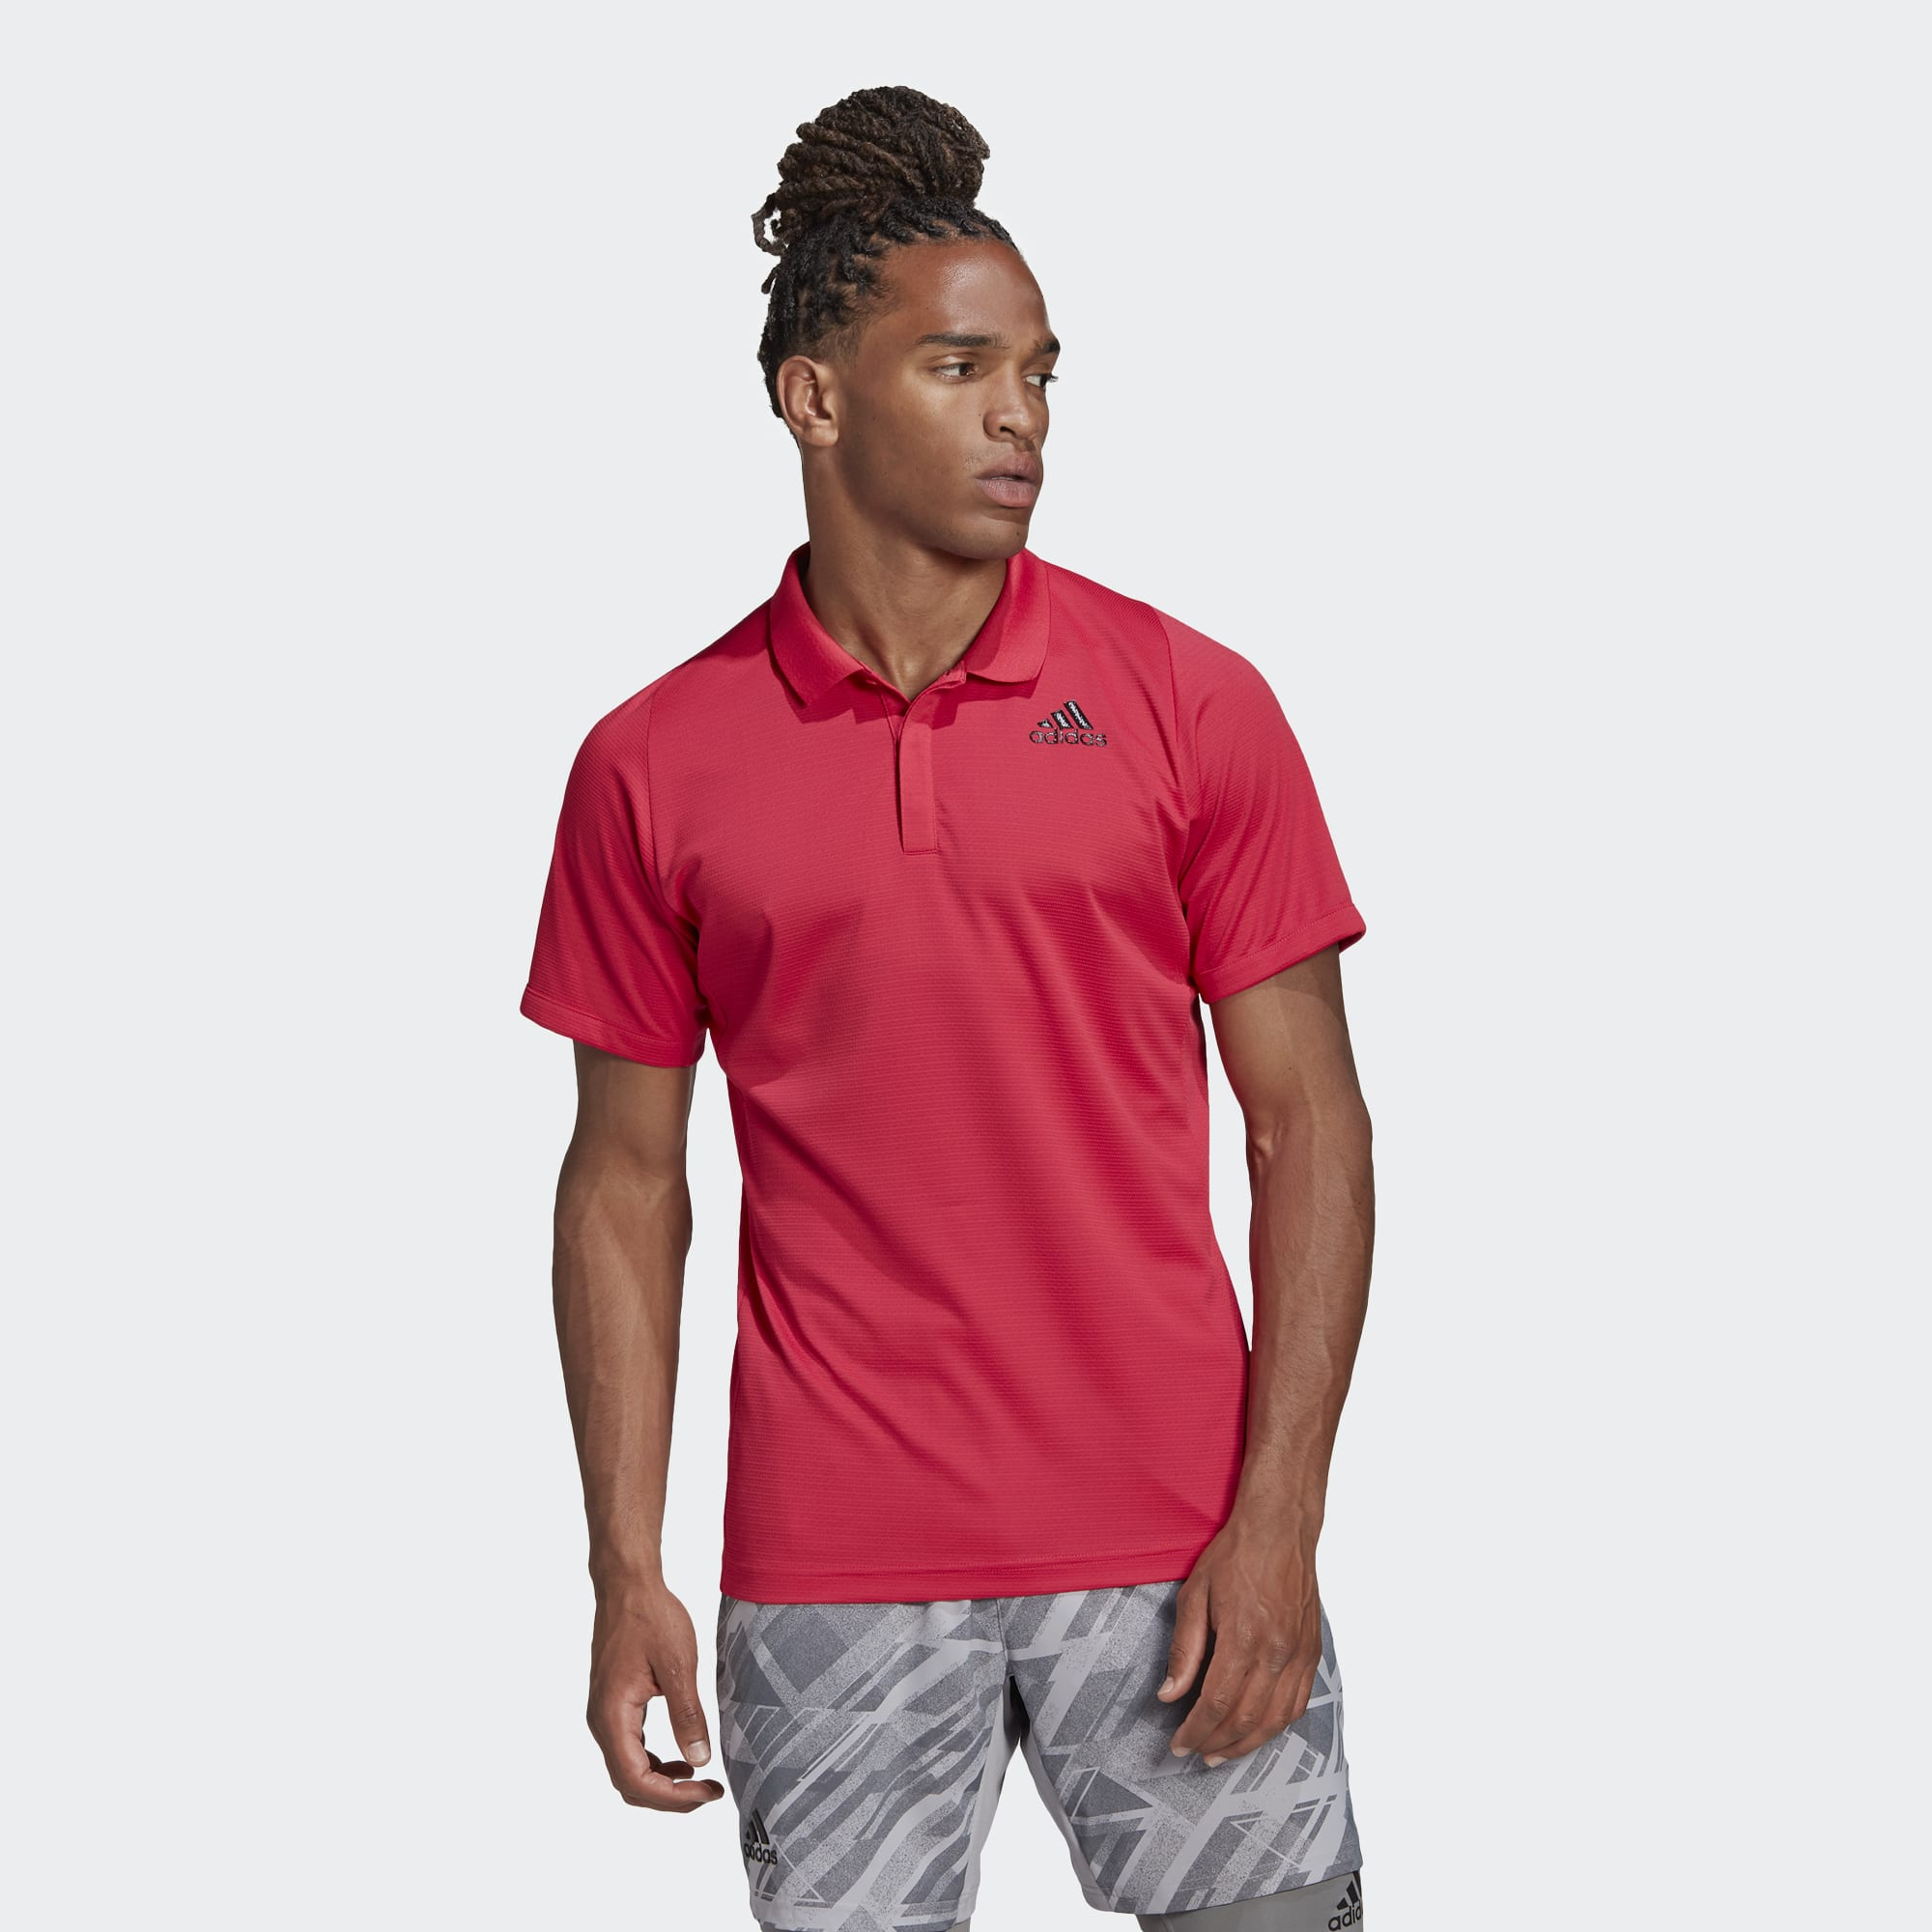 Adidas FreeLift Tennis HEAT.RDY Poloshirt